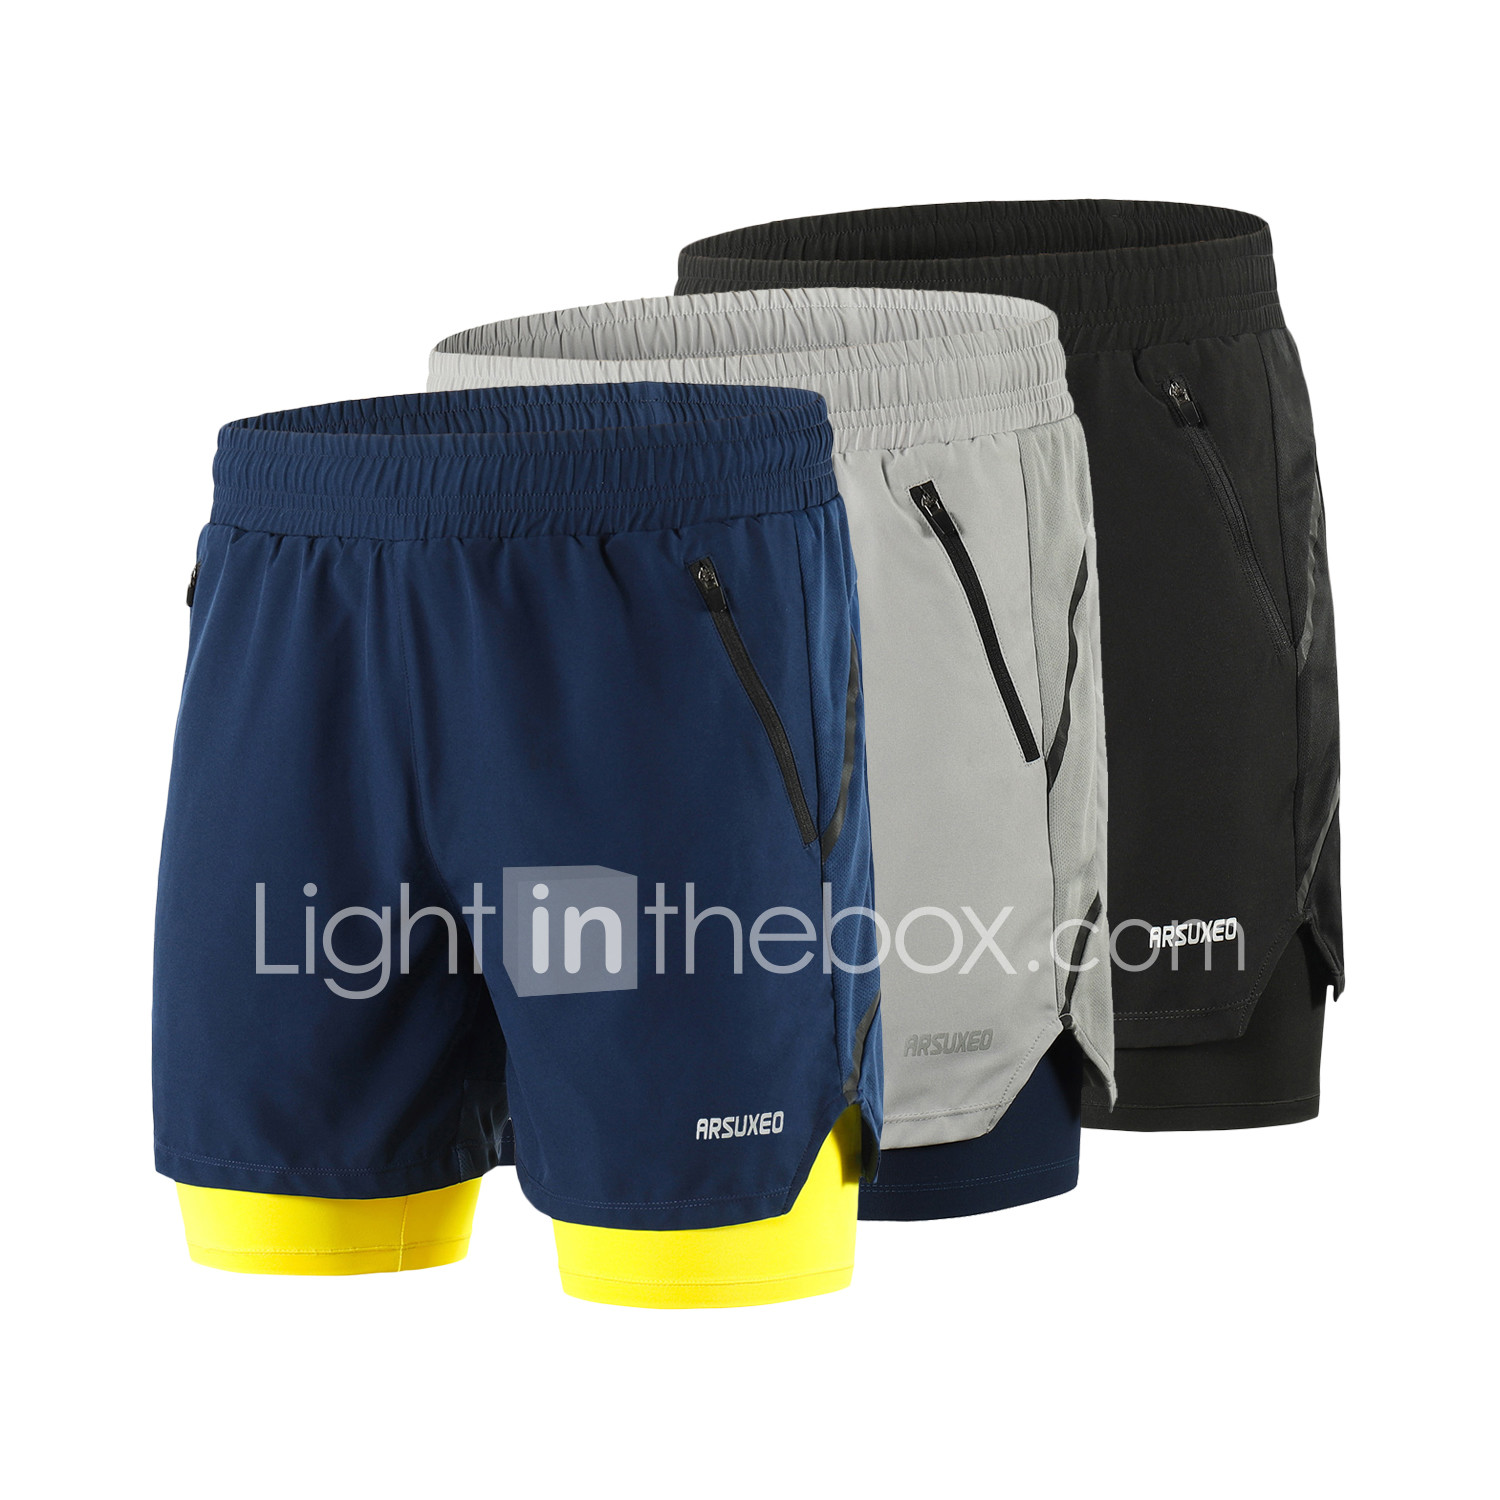 Men/'s 2 in 1 Running Shorts Quick Drying Sports Legging  Pants With Pockets 520